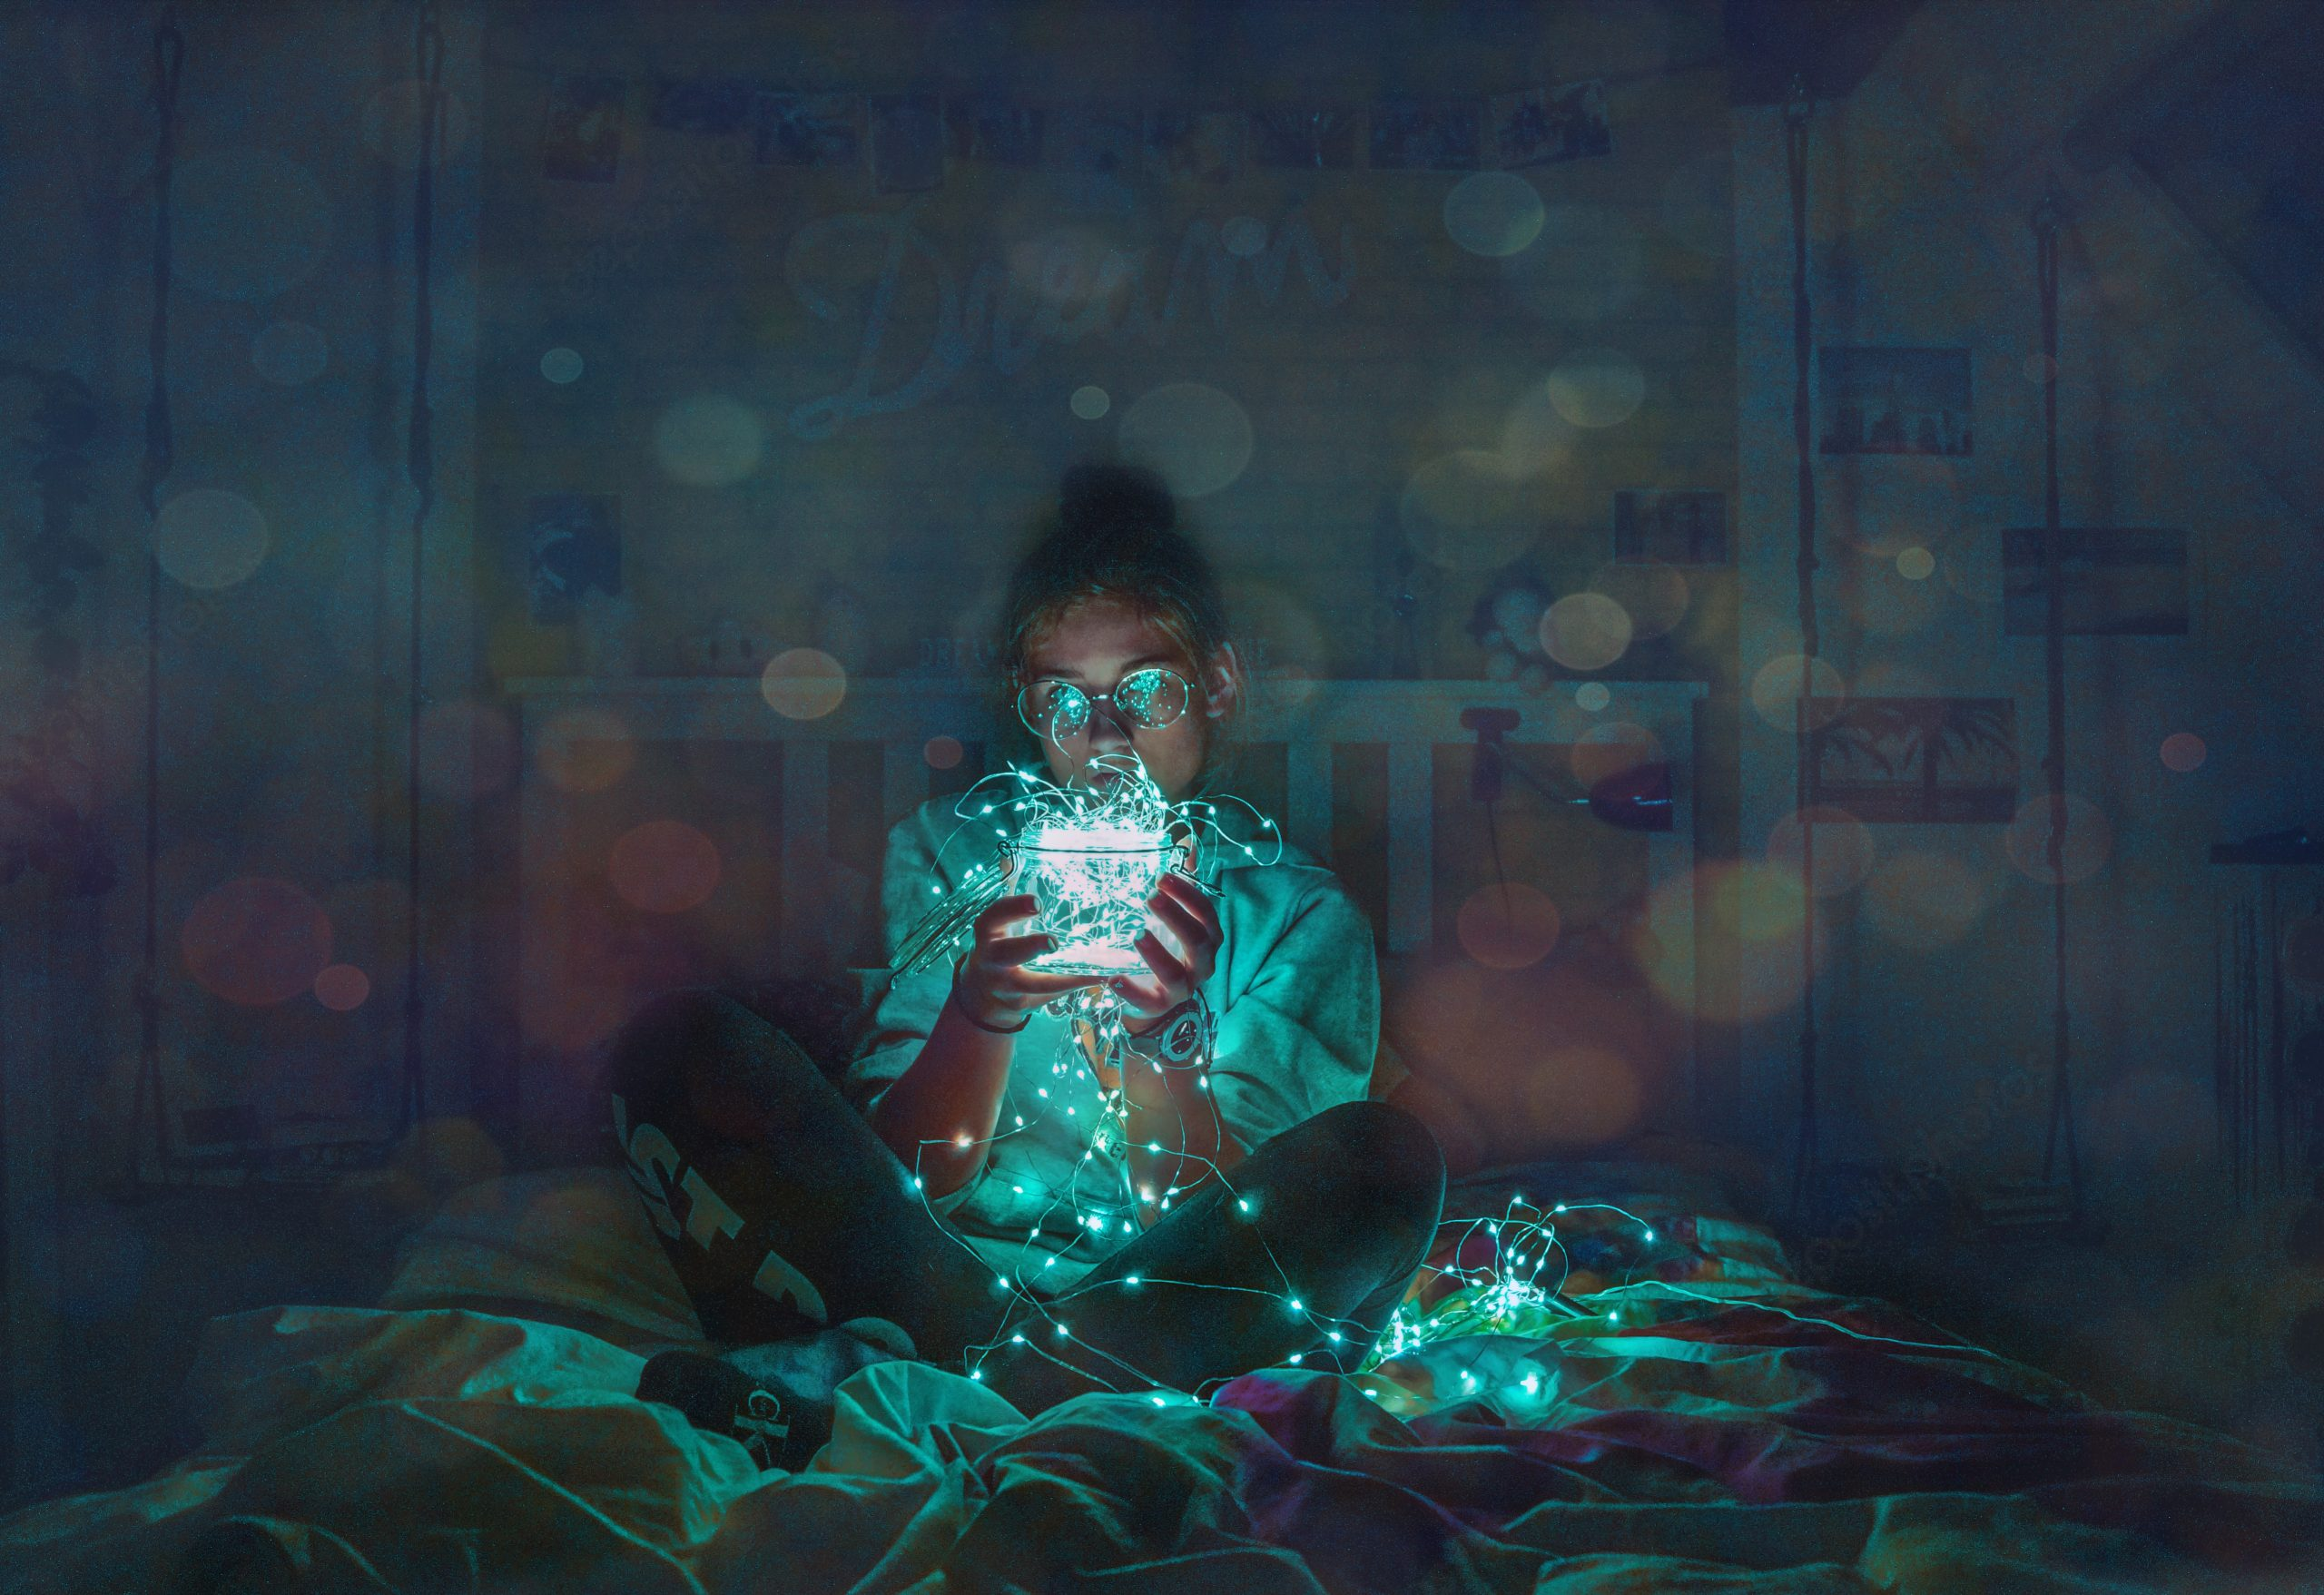 Electronics can disrupt an ADHD bedtime routine. person in bed using an electronic device, information is glowing all around them and lighting up the dark room